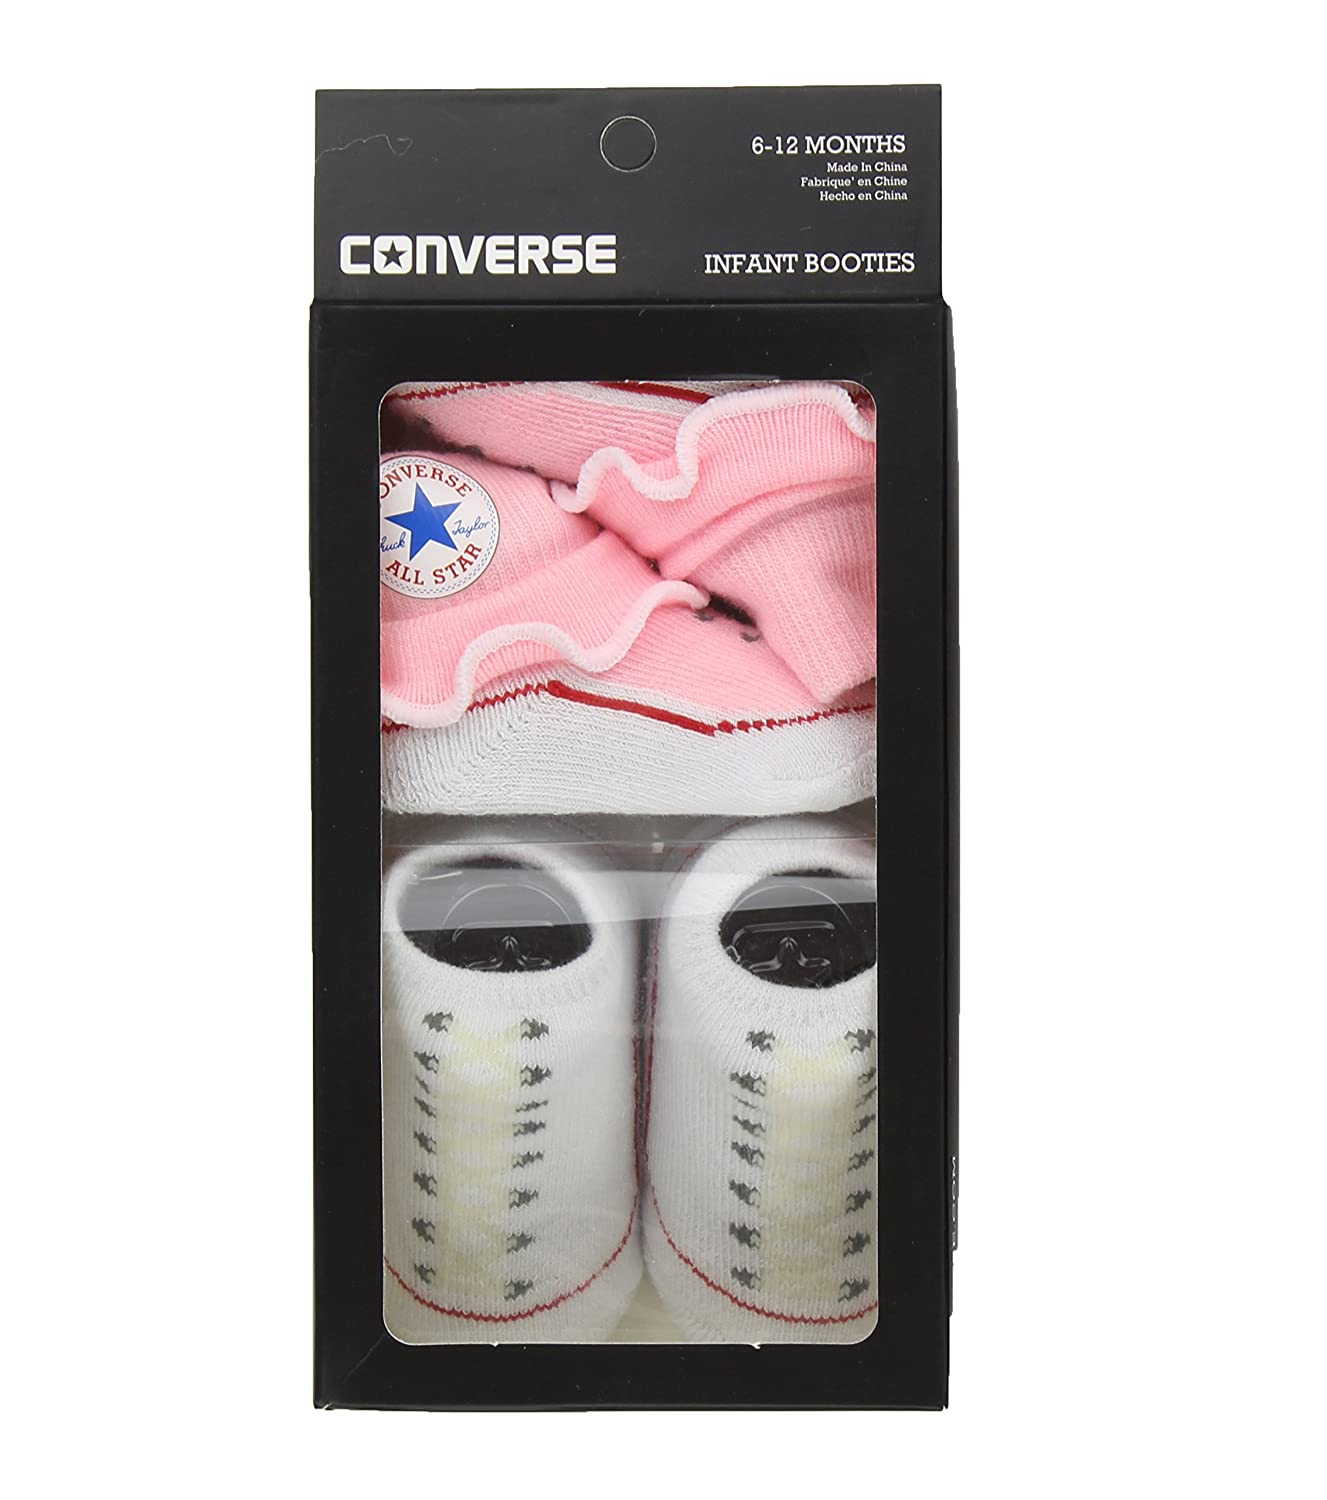 dee0e285fd33 Amazon.com  Converse Baby Booties Set for Infant Boys and Girls (0-6  Months)  Clothing